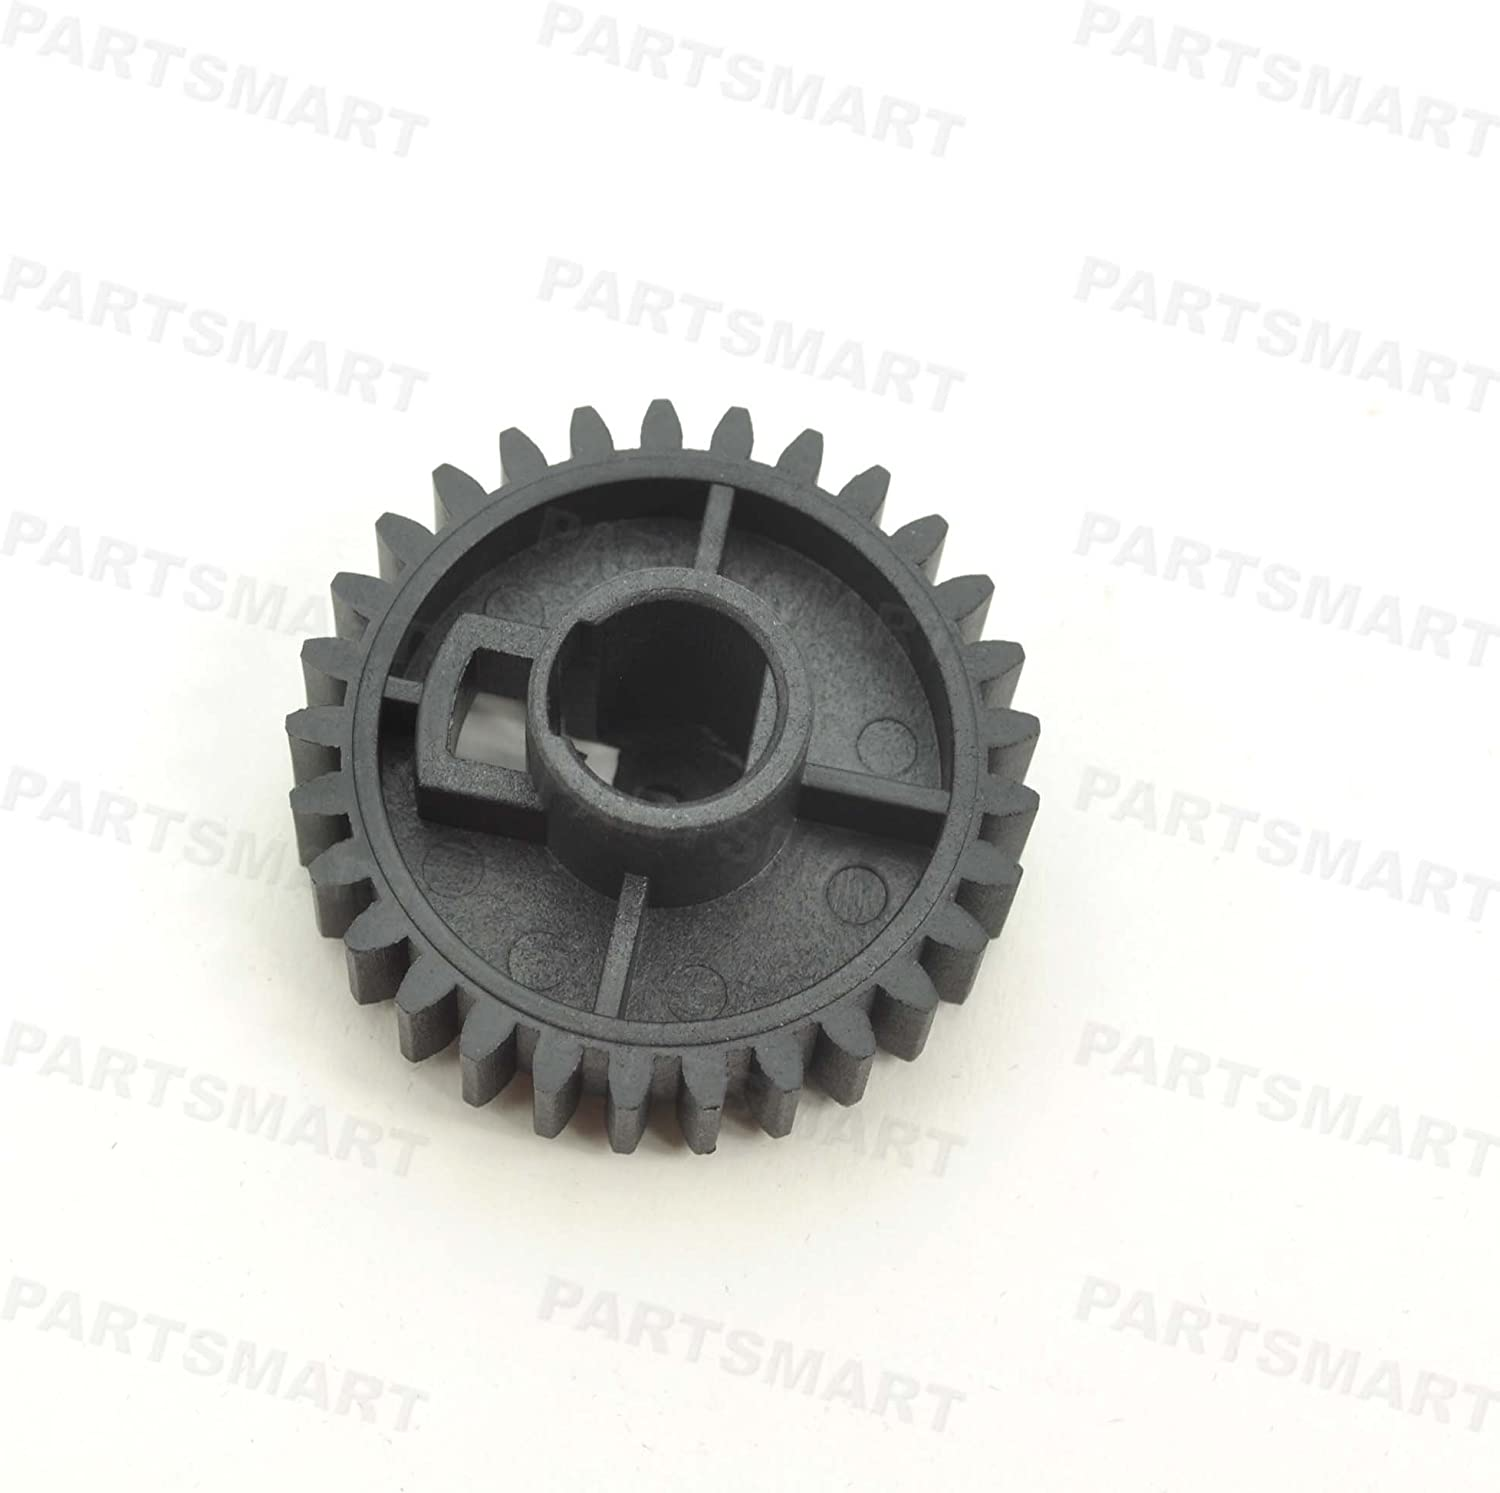 RU5-0556-000 Fuser Gear (29T) for HP Laserjet 5200, Laserjet M5025